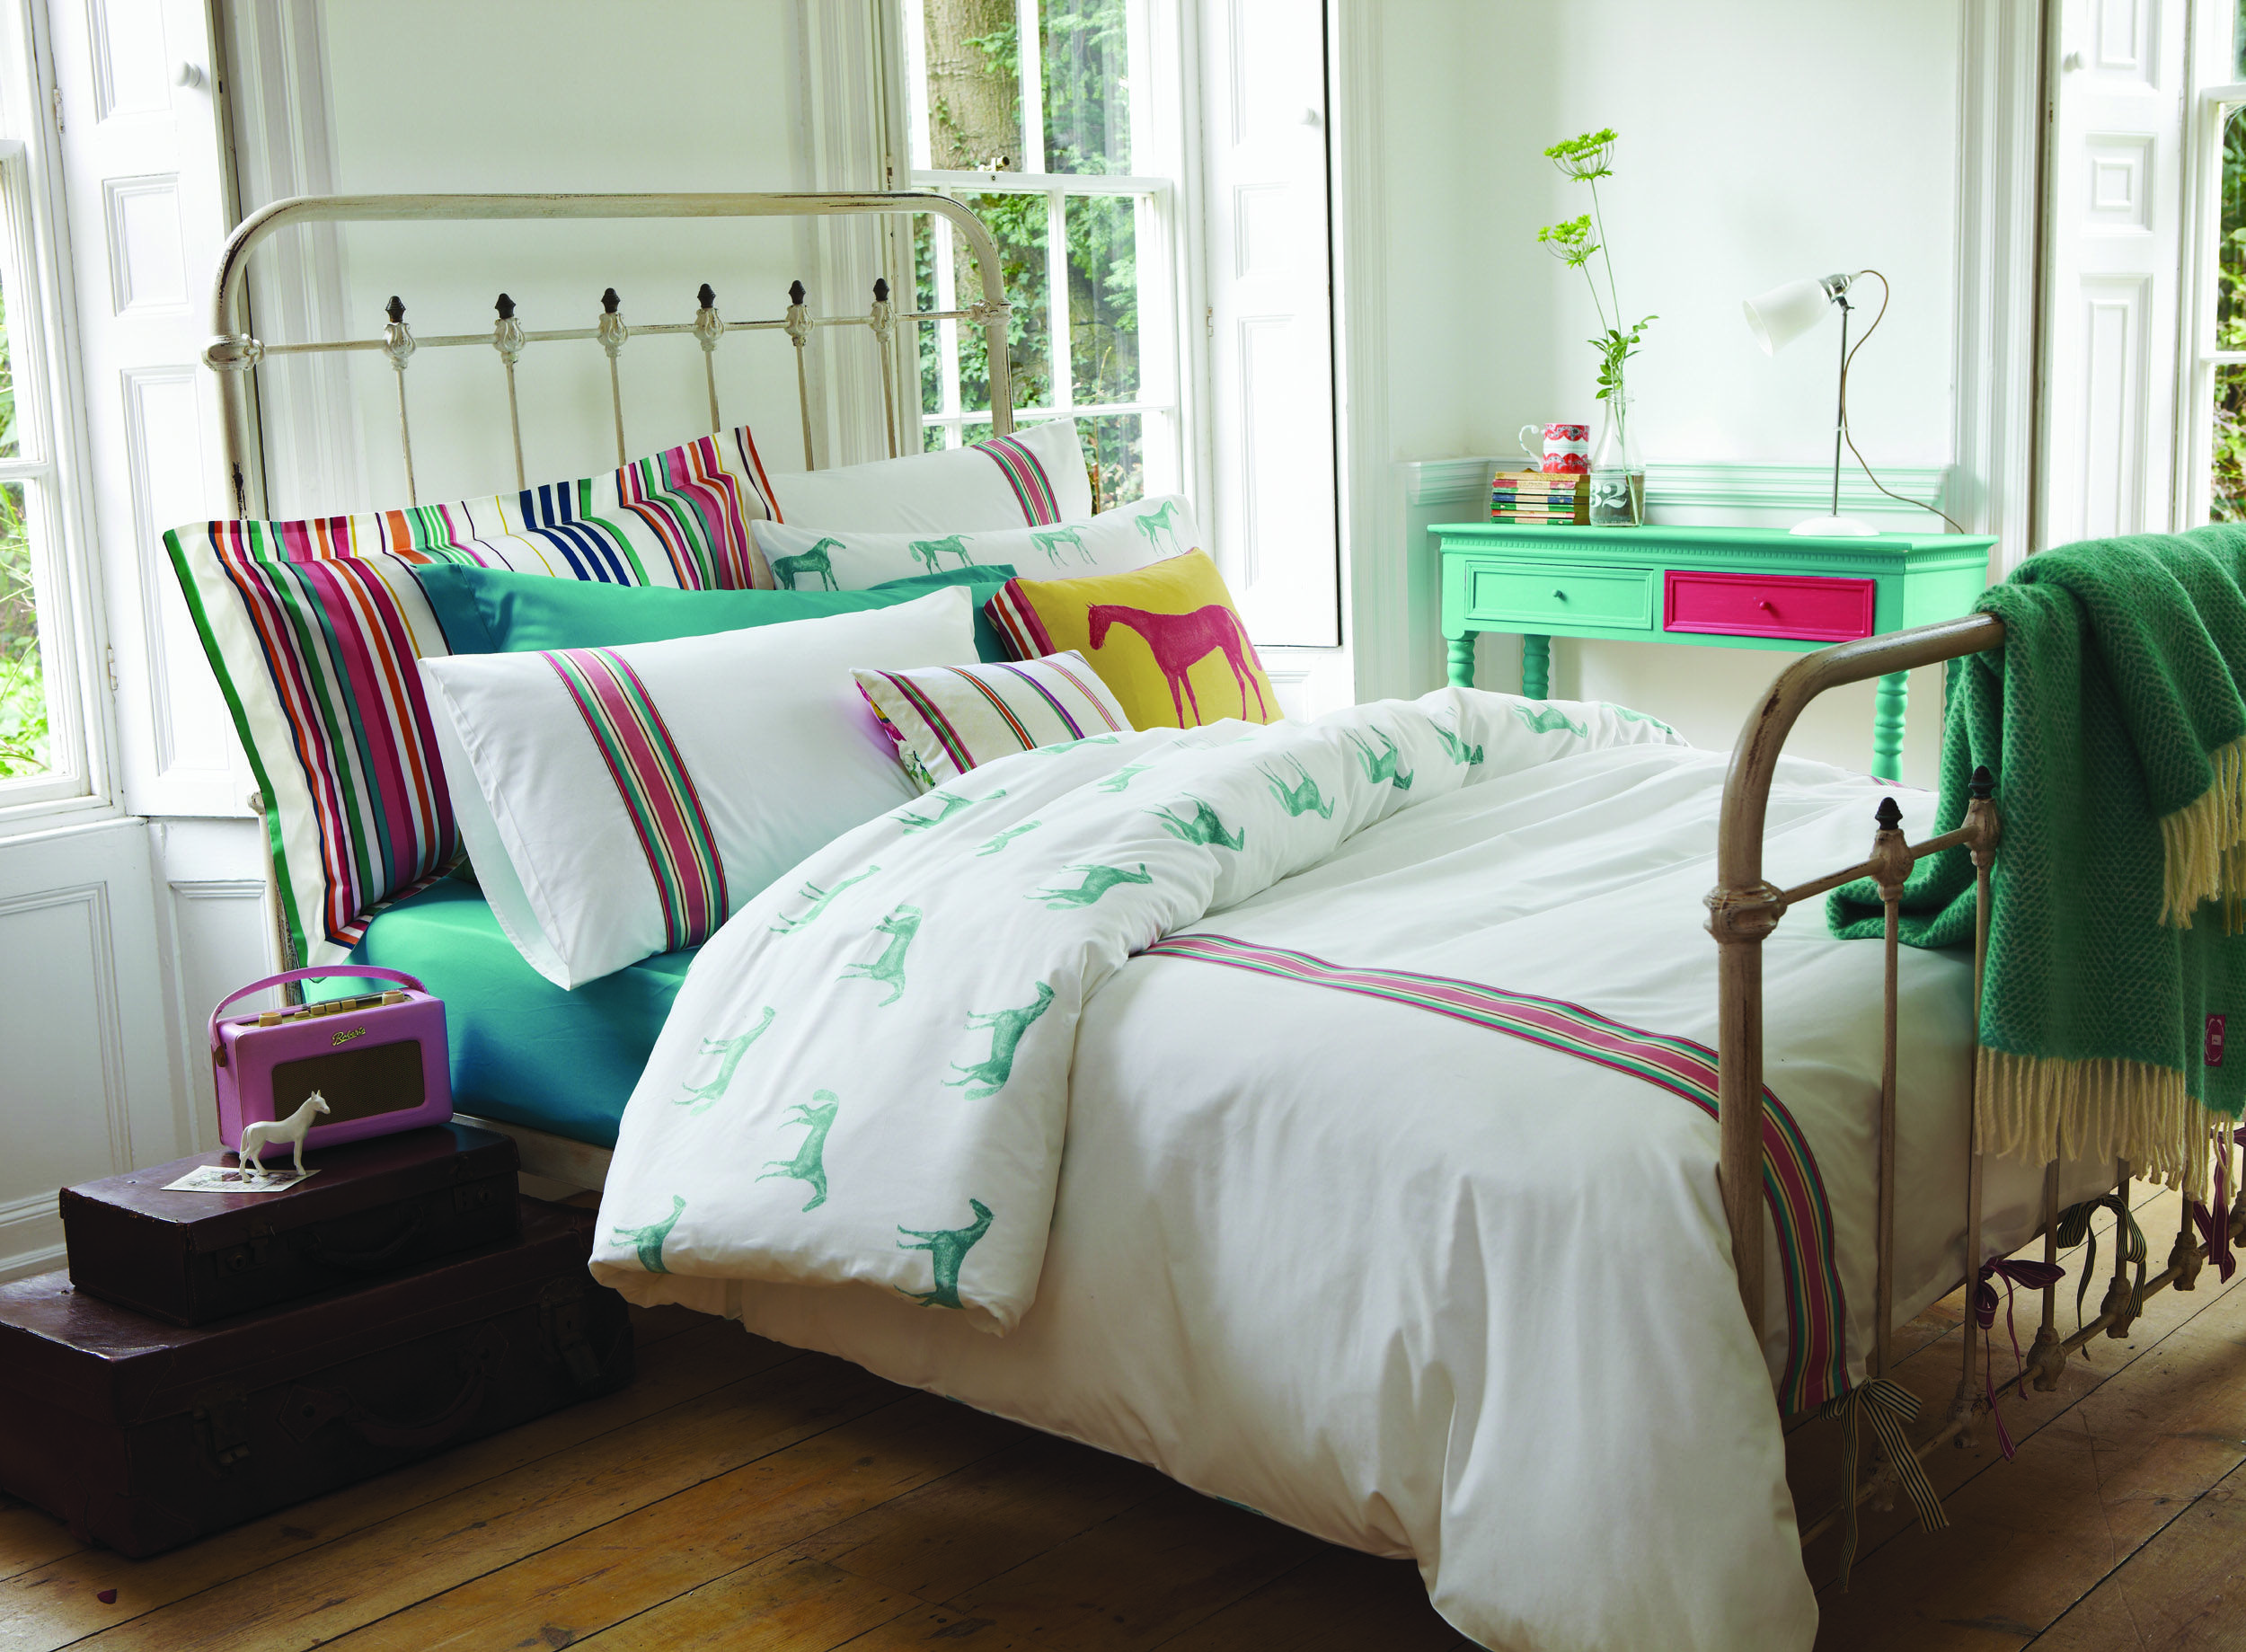 Horse Themed Bedroom Part - 40: Sophisticated Horse Themed Room- They Suggested It For A Child, But Can I  Live